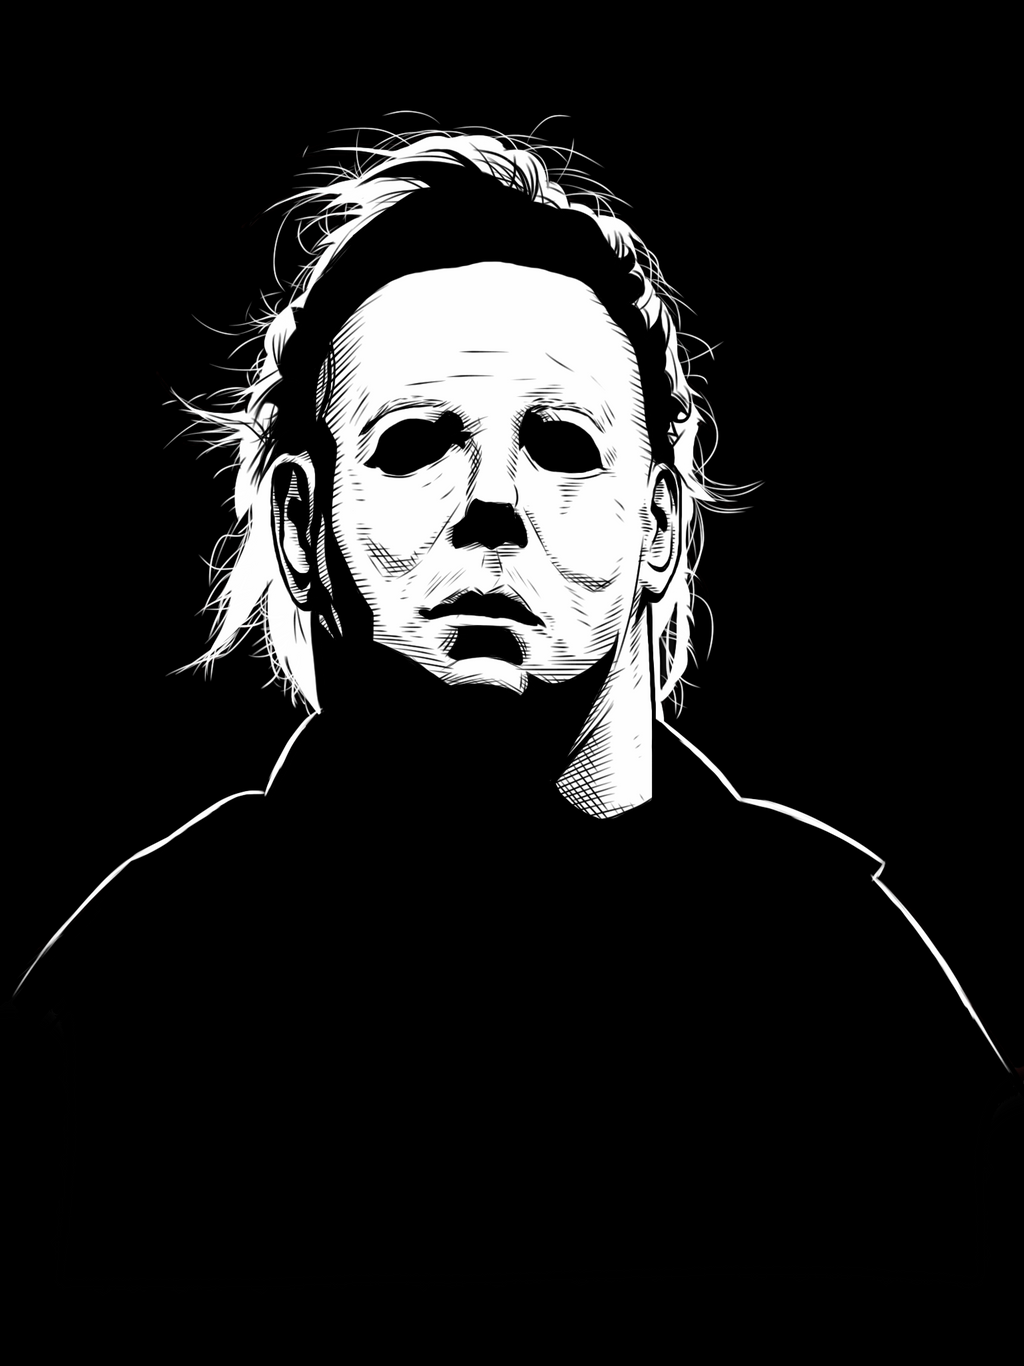 iPad Michael Myers by DMThompson iPad Michael Myers by DMThompson - ipad_michael_myers_by_dmthompson-d6rkh1u